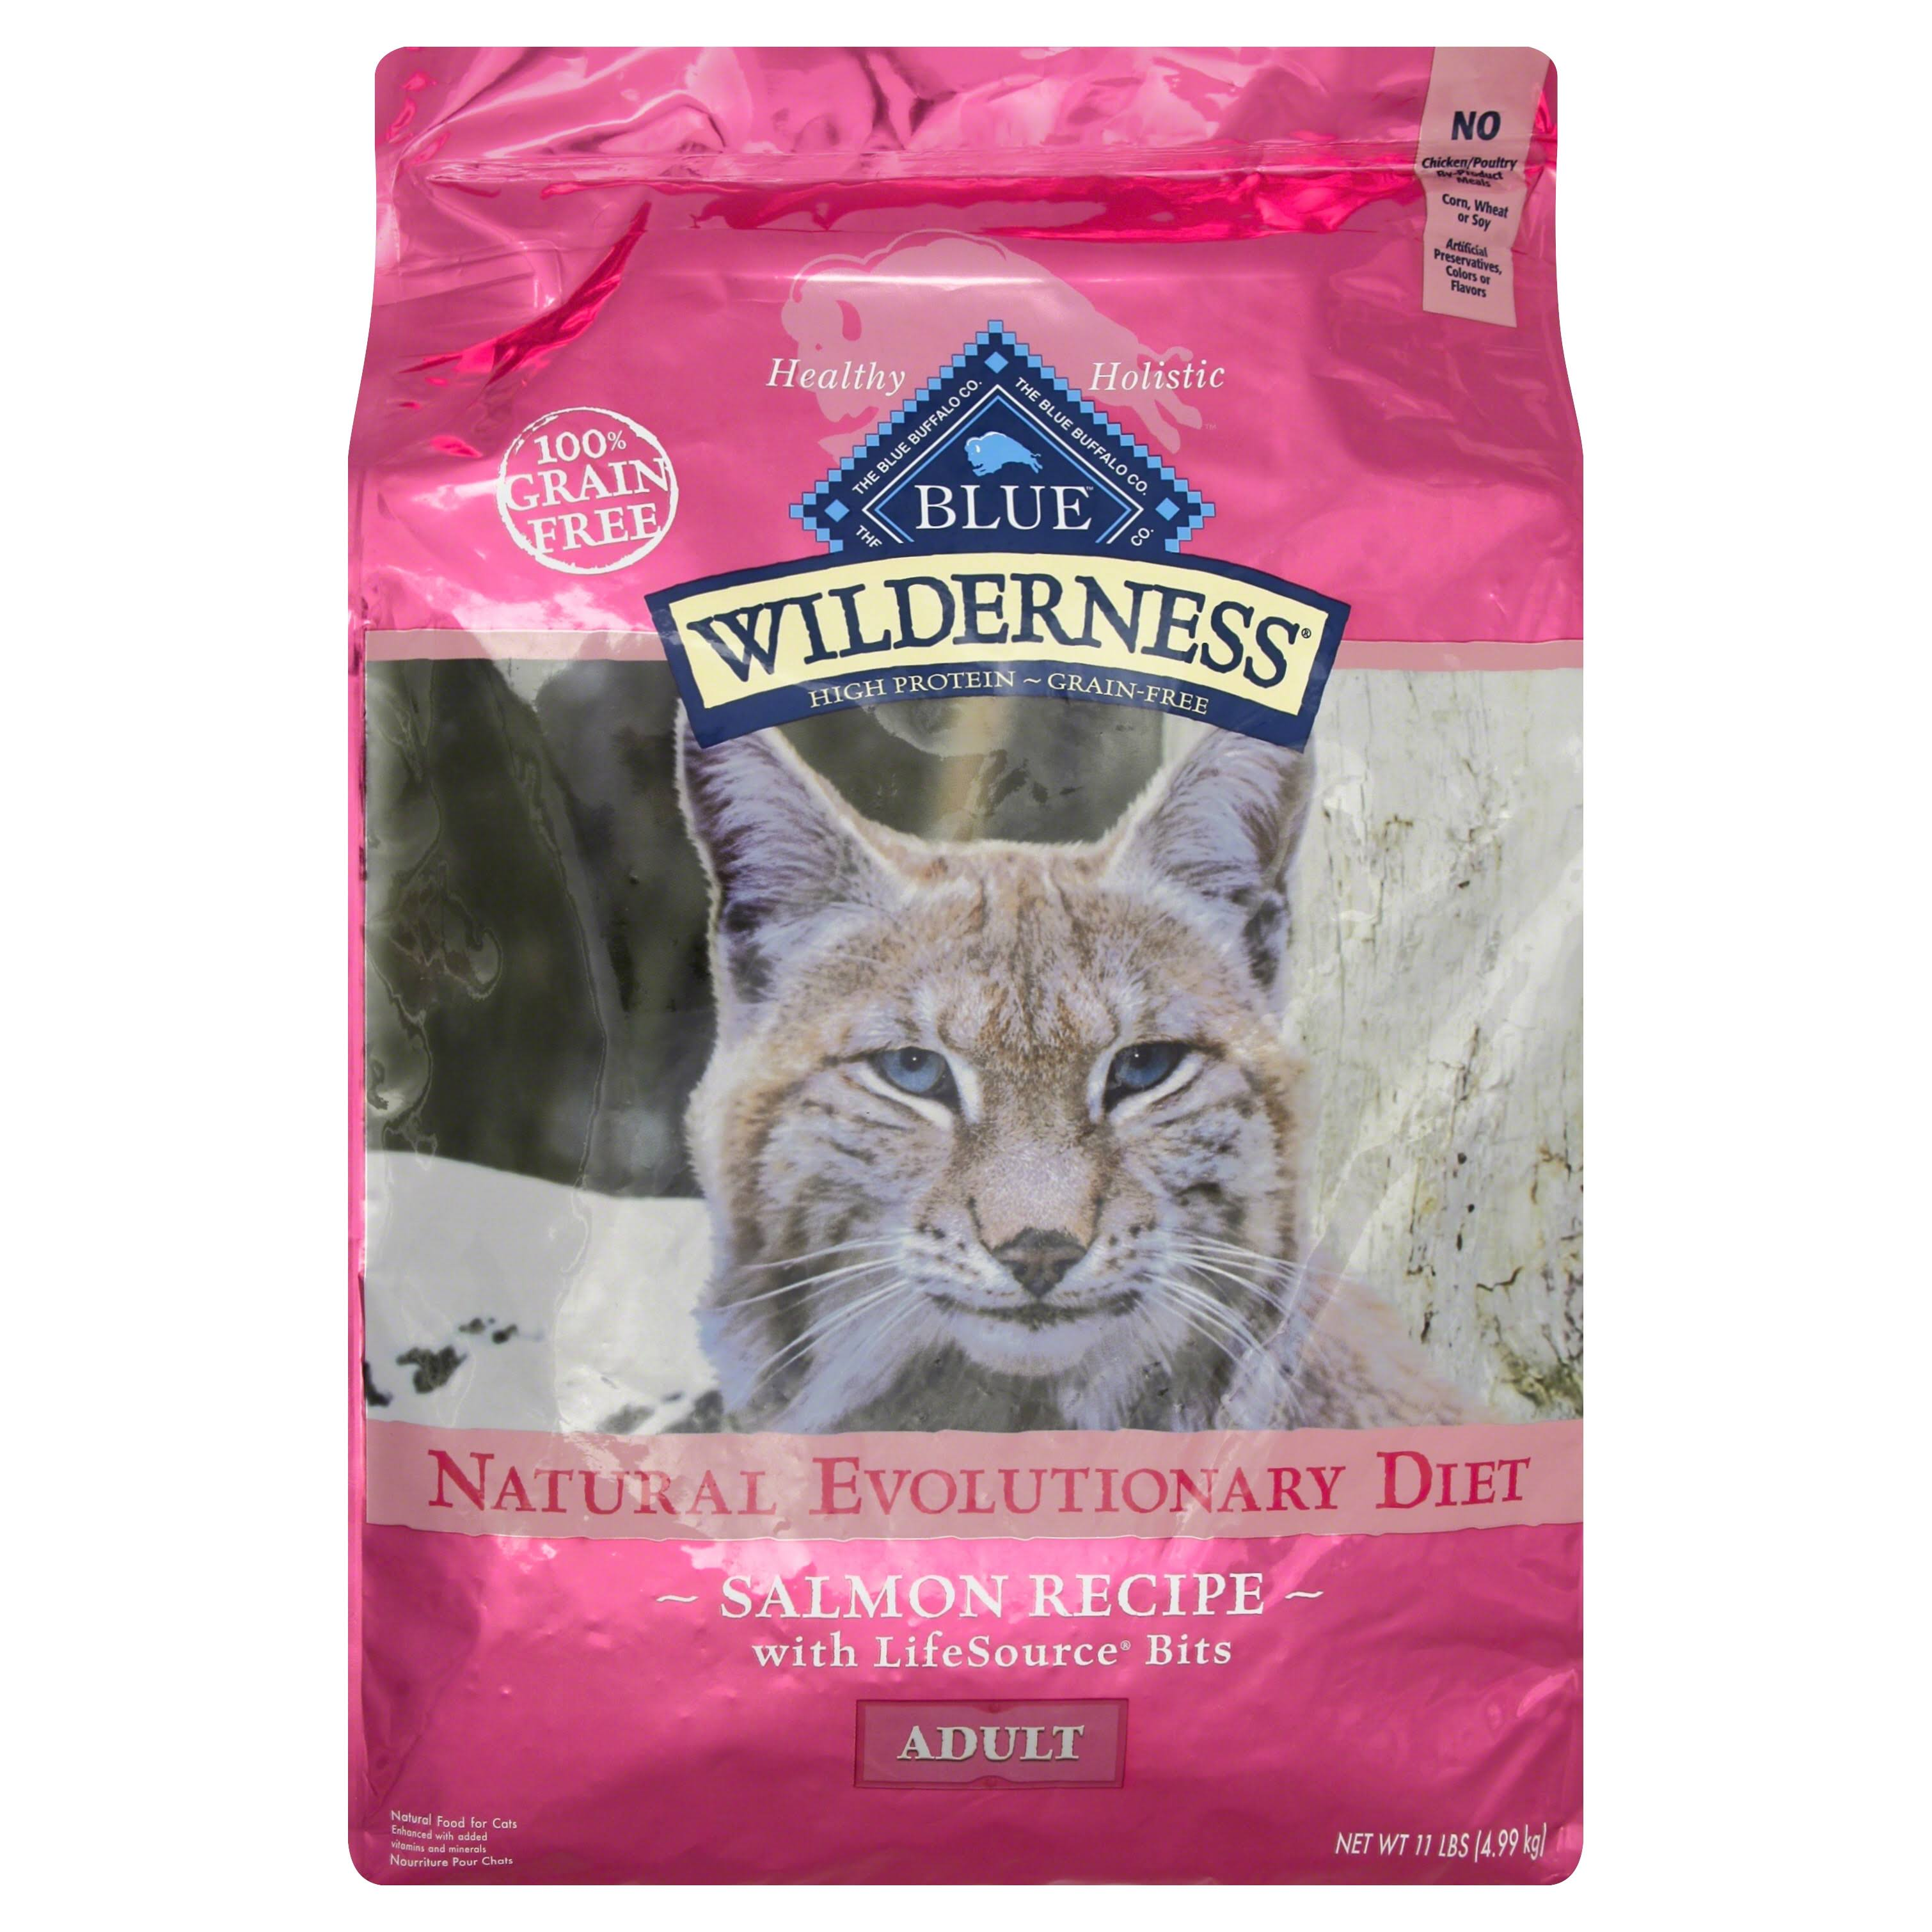 Blue Buffalo 100-Percent Grain Free Dry Cat Food - Salmon Recipe